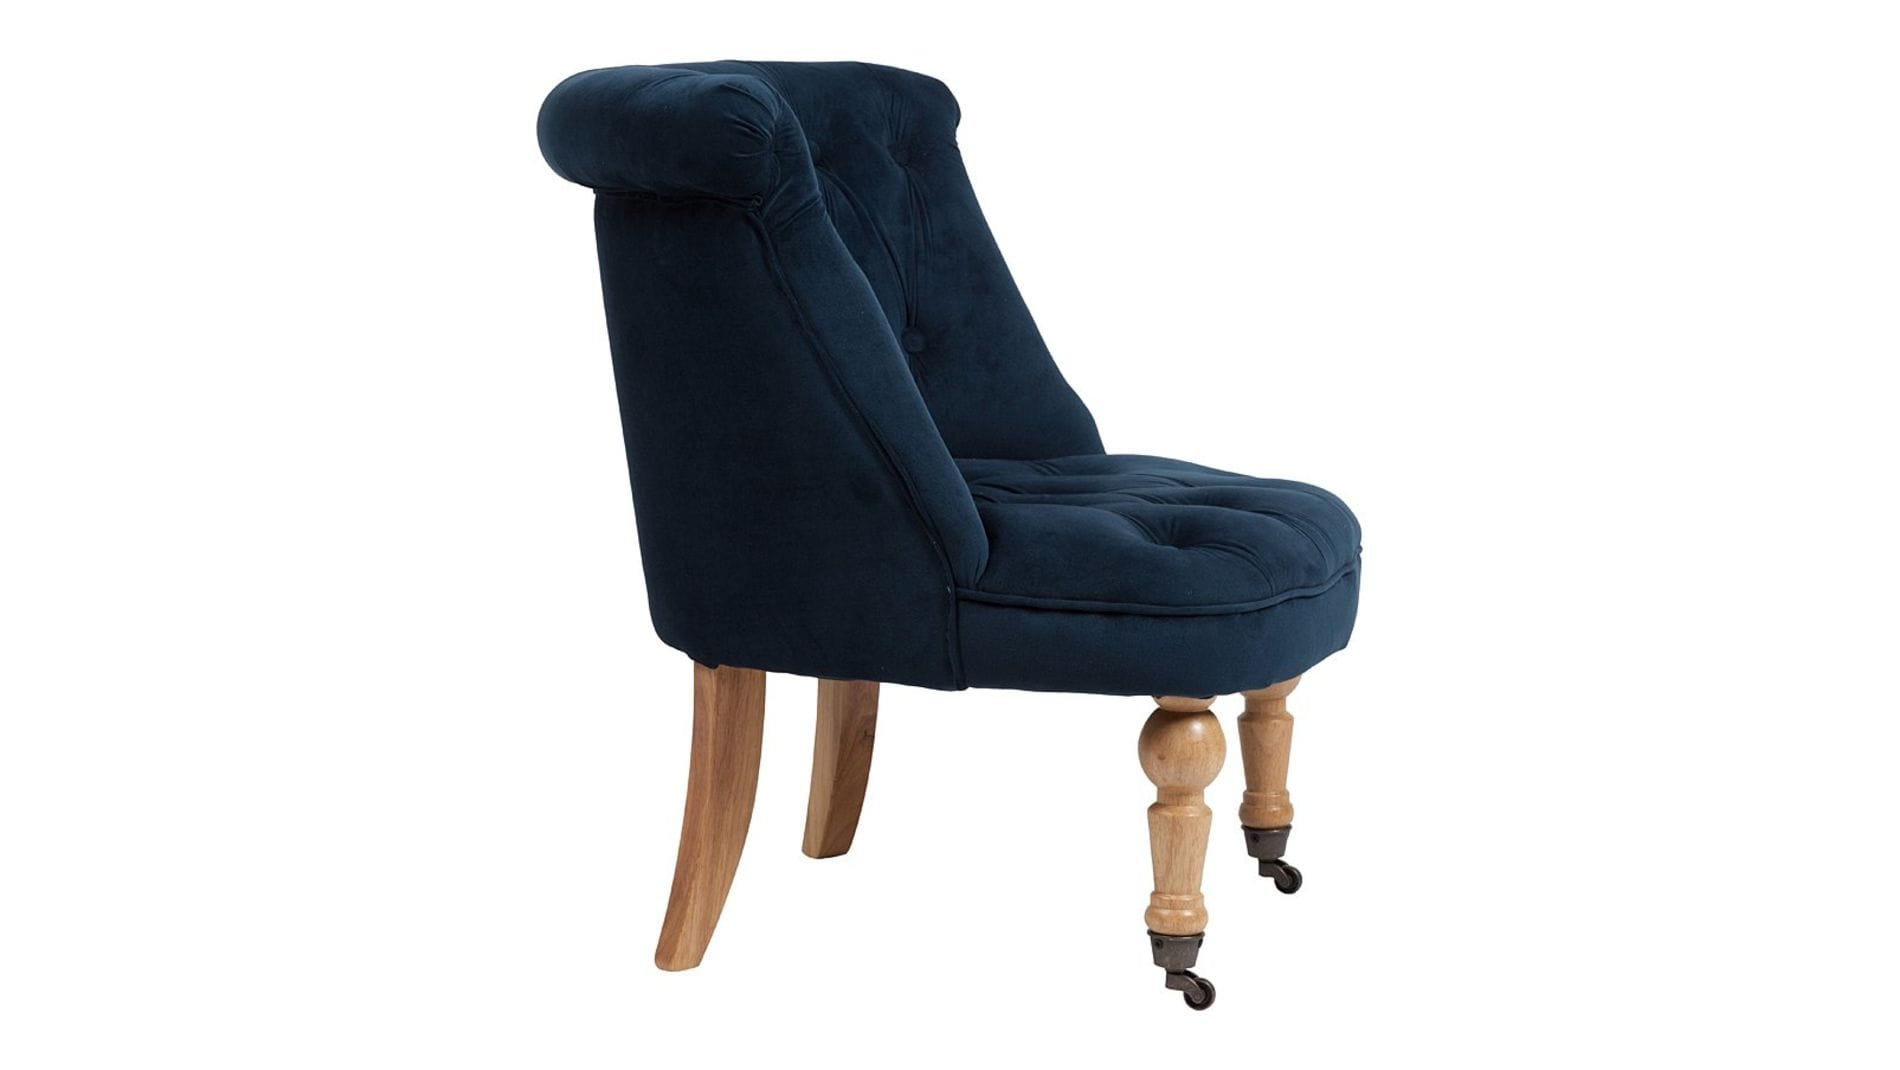 Кресло Amelie French Country Chair Синий Вельвет М